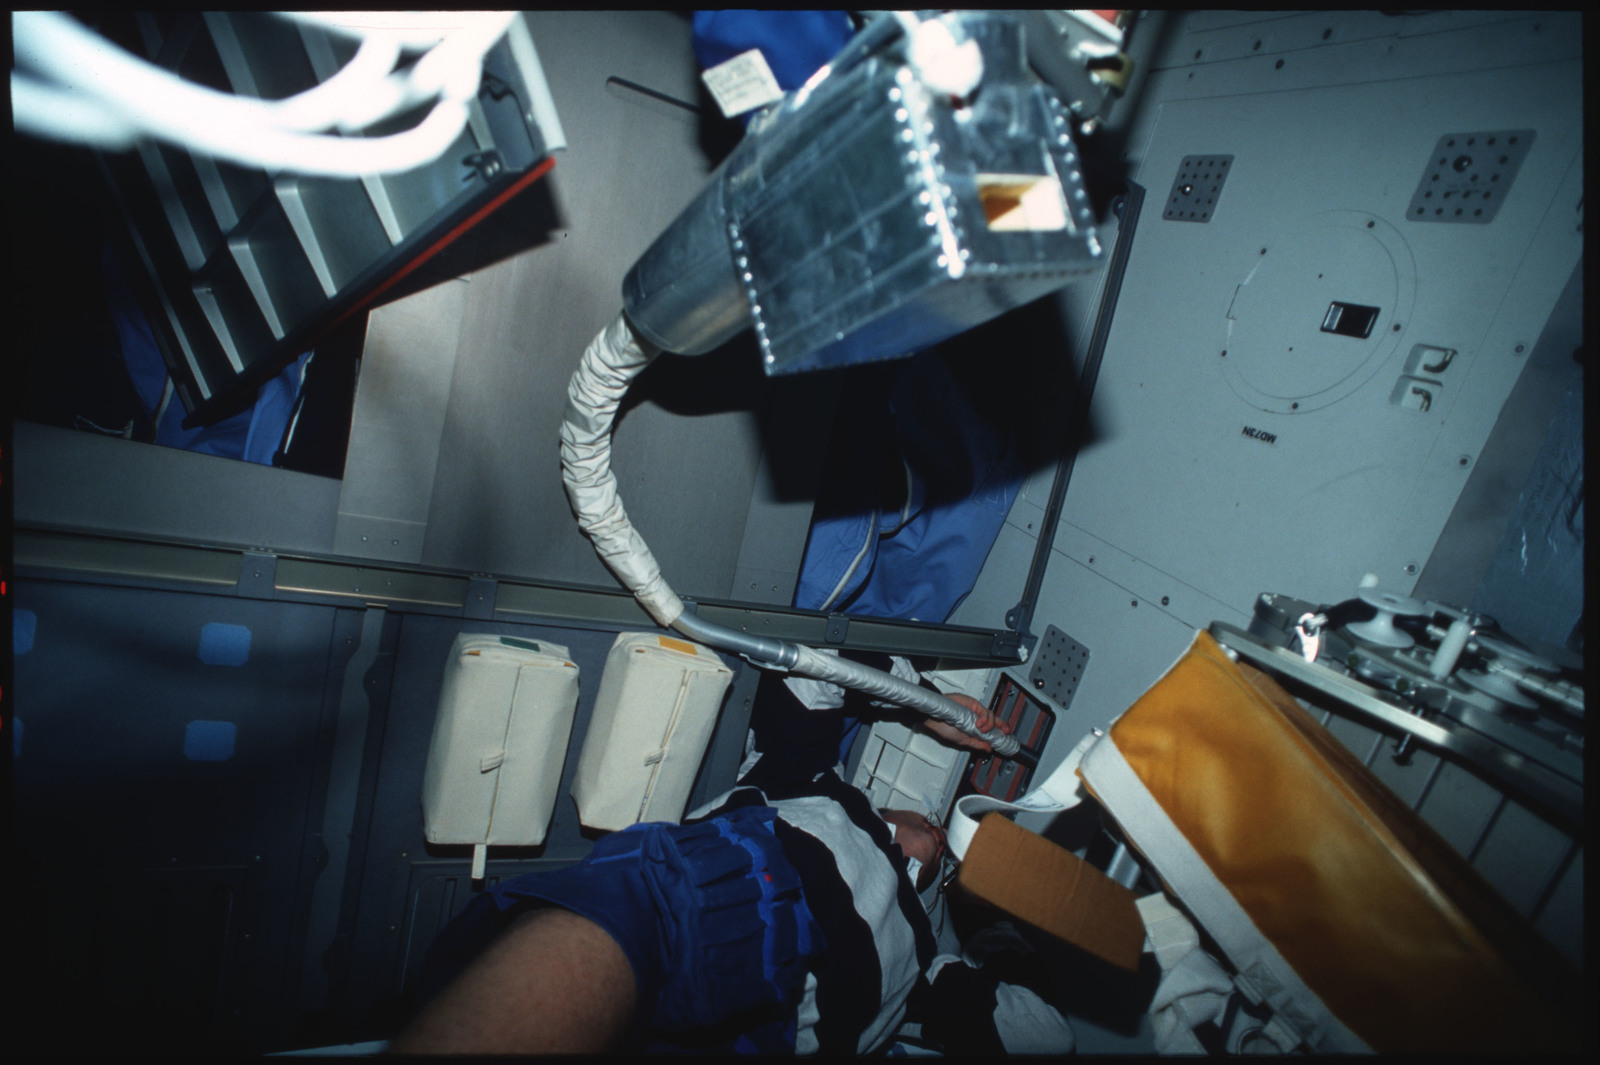 S45-14-019 - STS-045 - STS-45 crewmembers engaged in orbiter maintenance